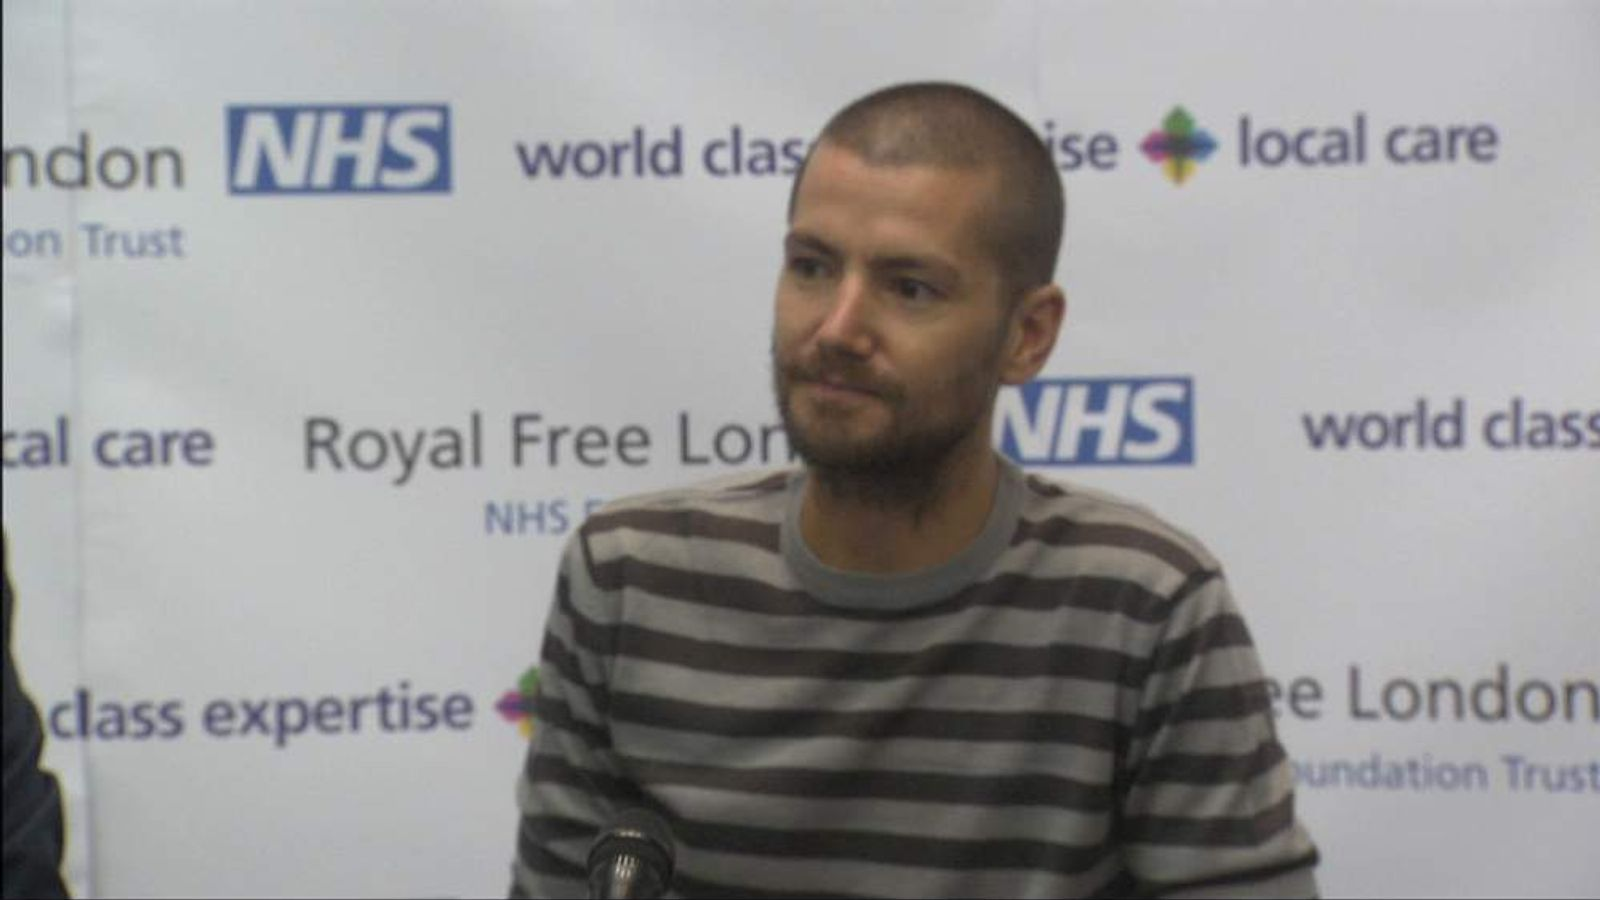 William Pooley speaks about Ebola